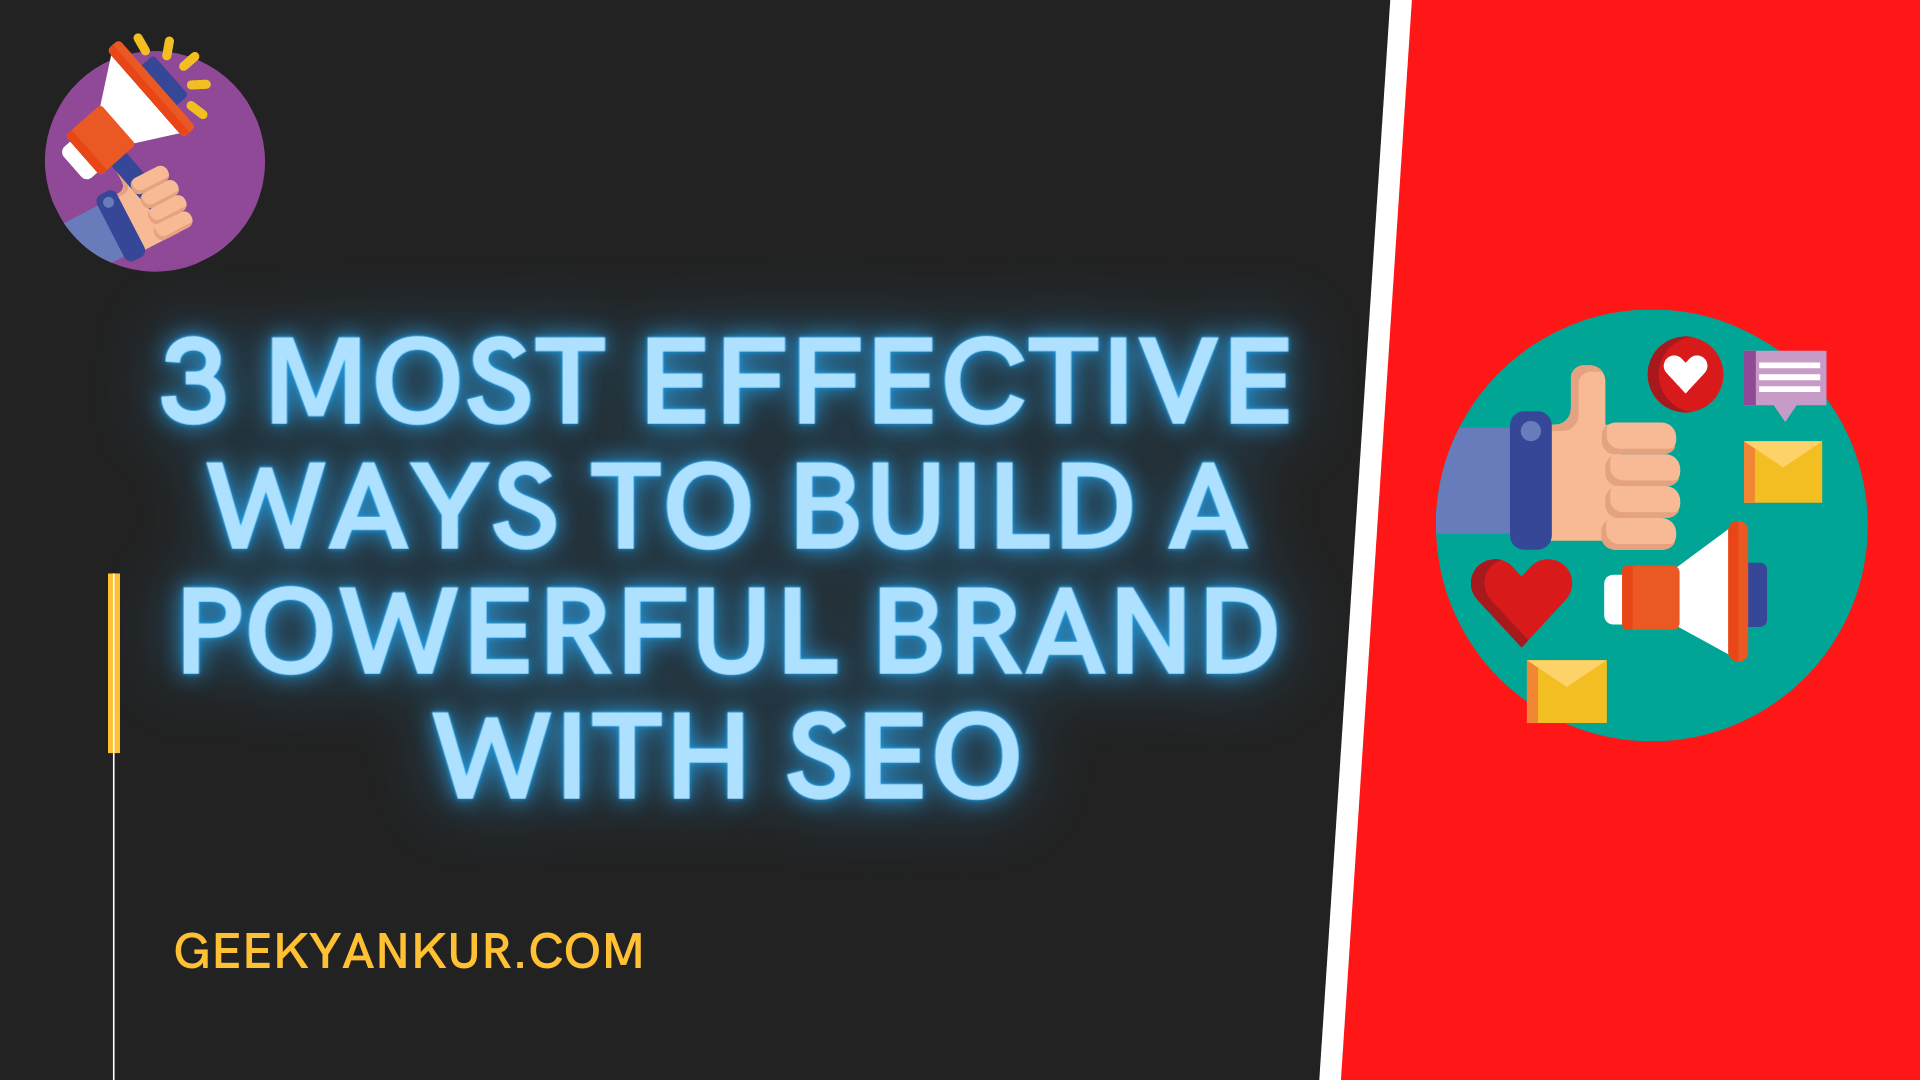 3 Most Effective Ways to Build a Powerful Brand with SEO